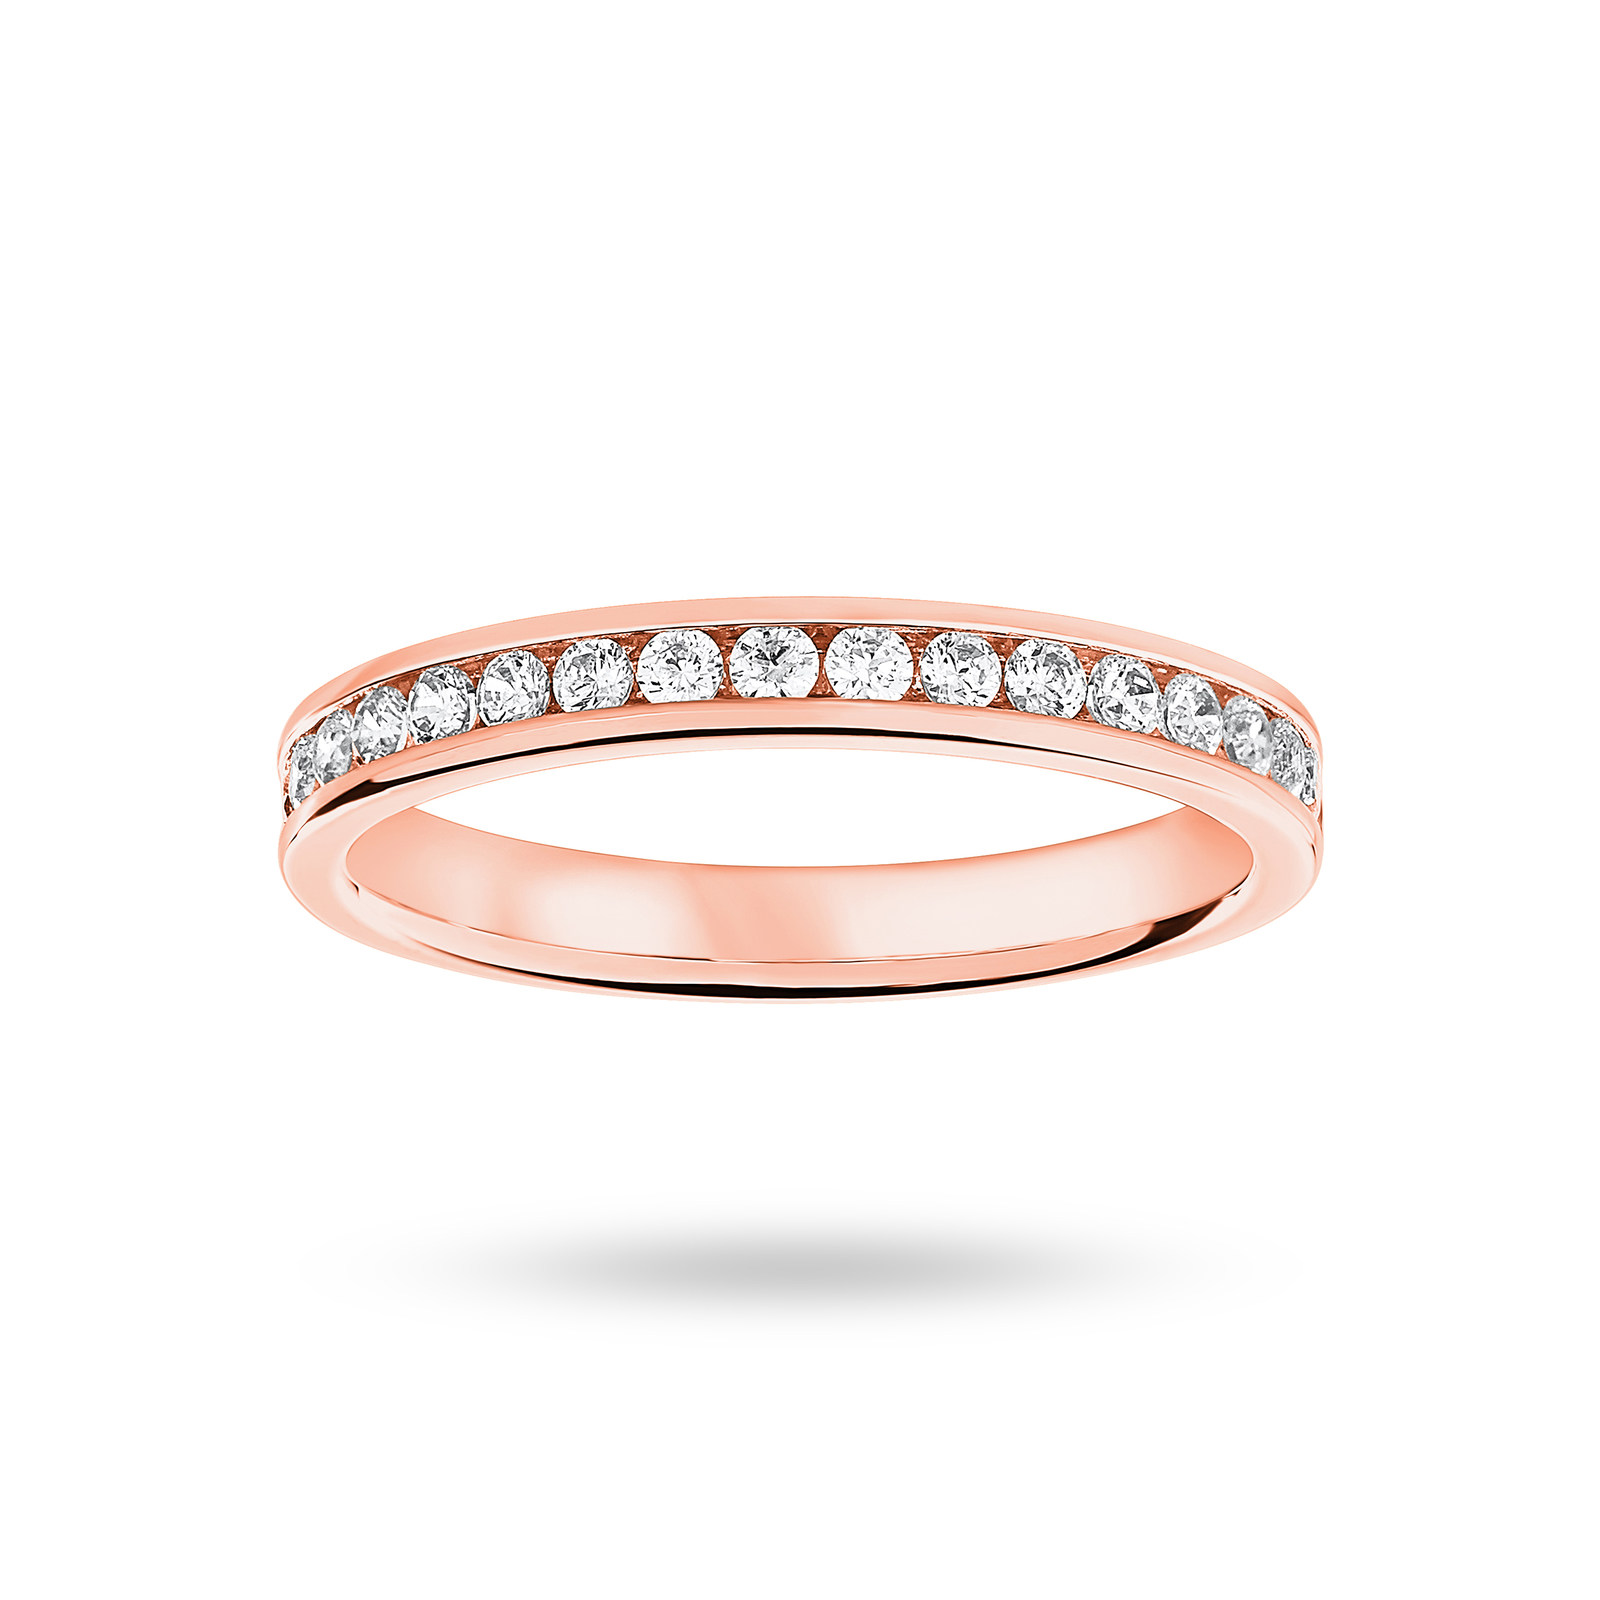 18 Carat Rose Gold 0.33 Carat Brilliant Cut Half Eternity Ring